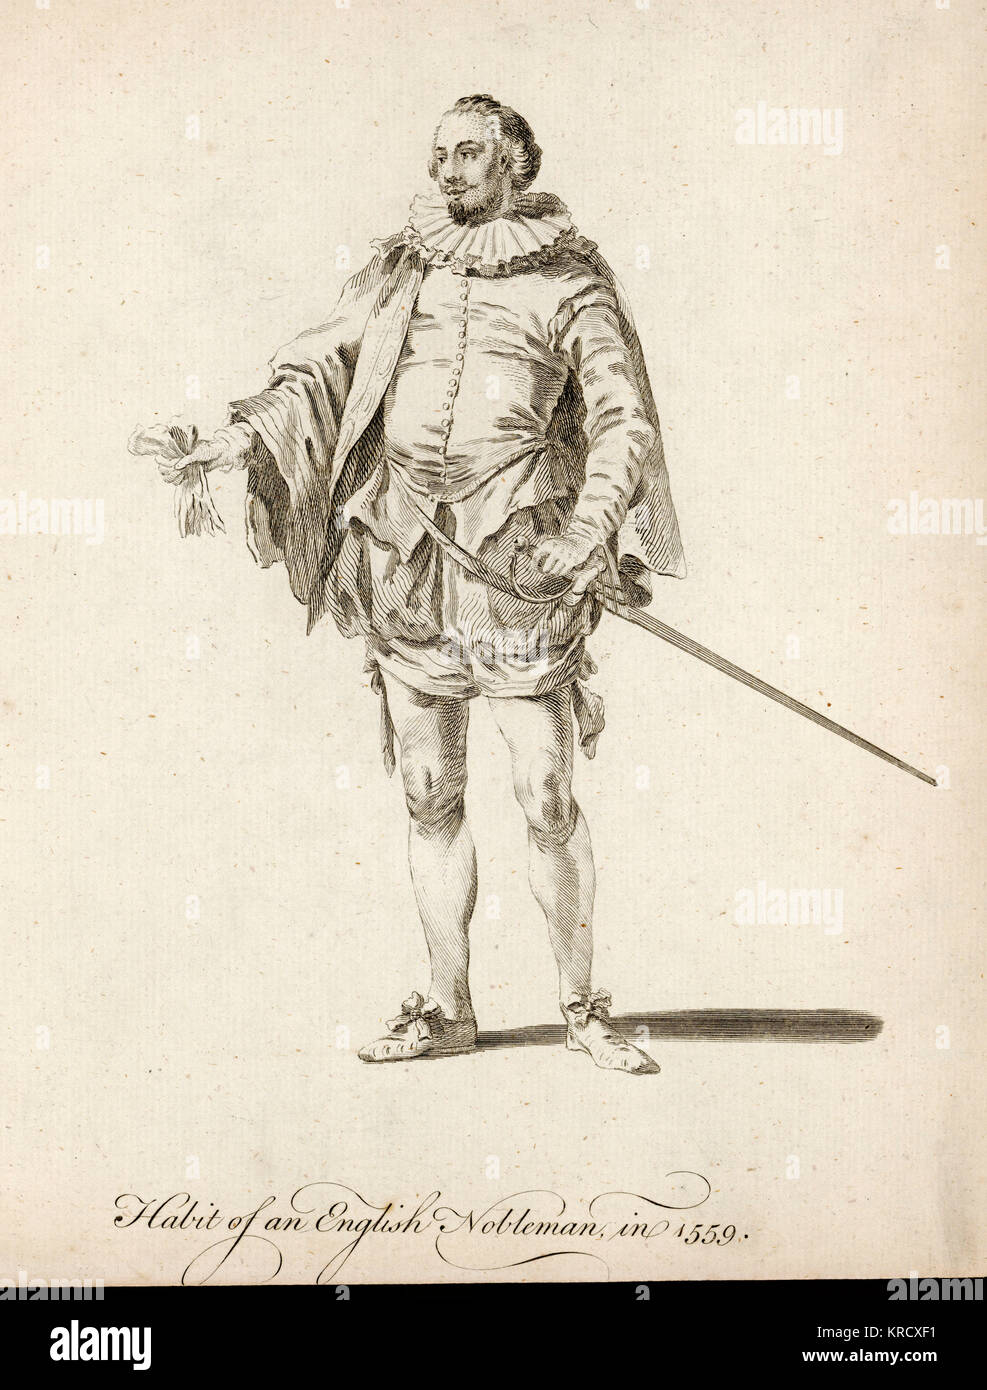 Habit of an English nobleman.          Date: 1559 - Stock Image